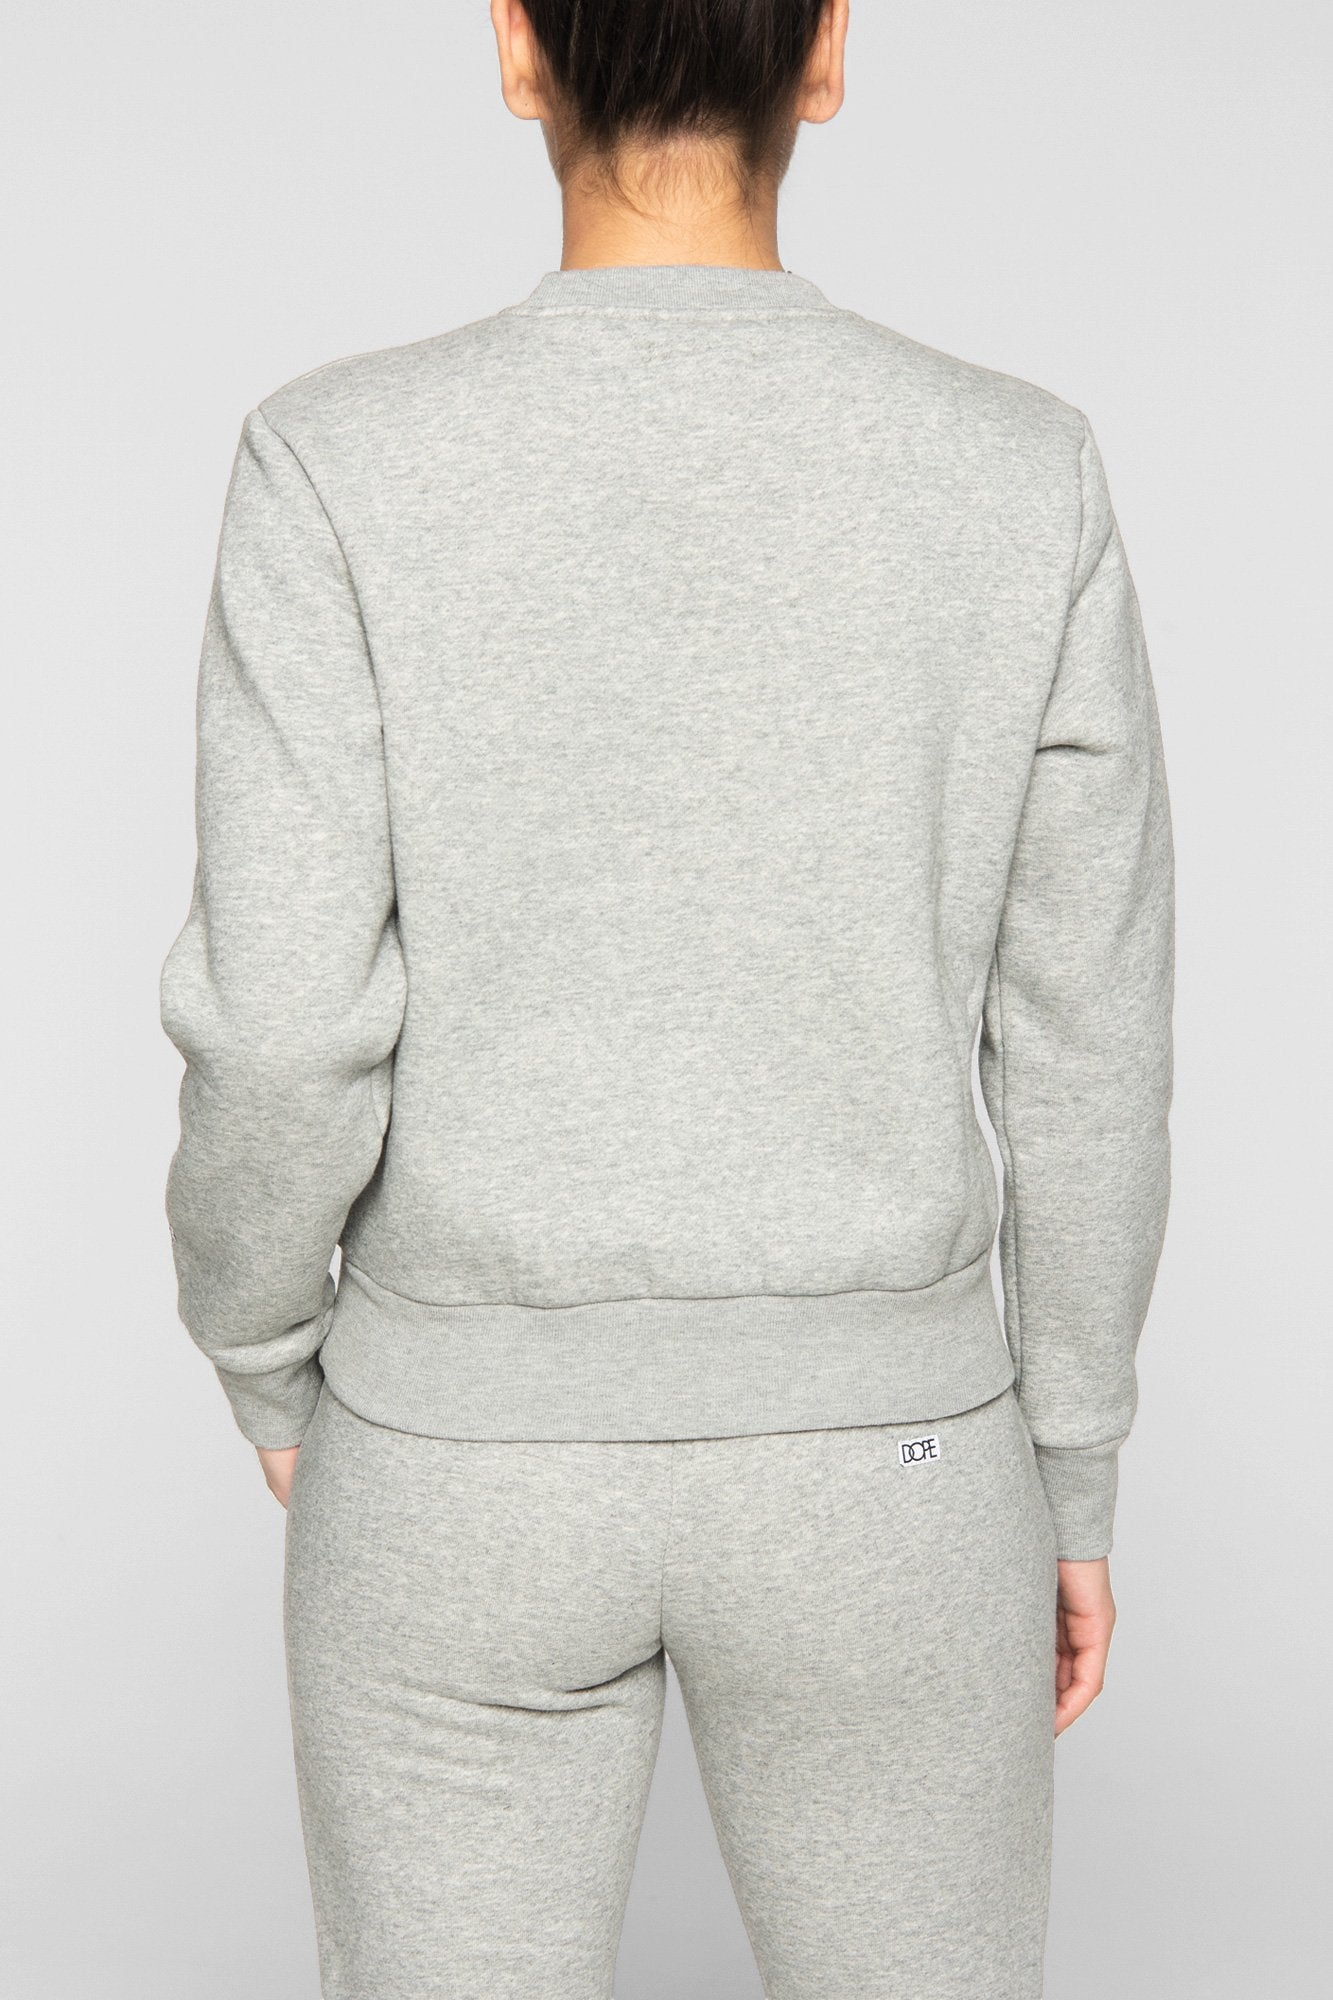 DOPE Embossed Cropped Crew #Heather Grey